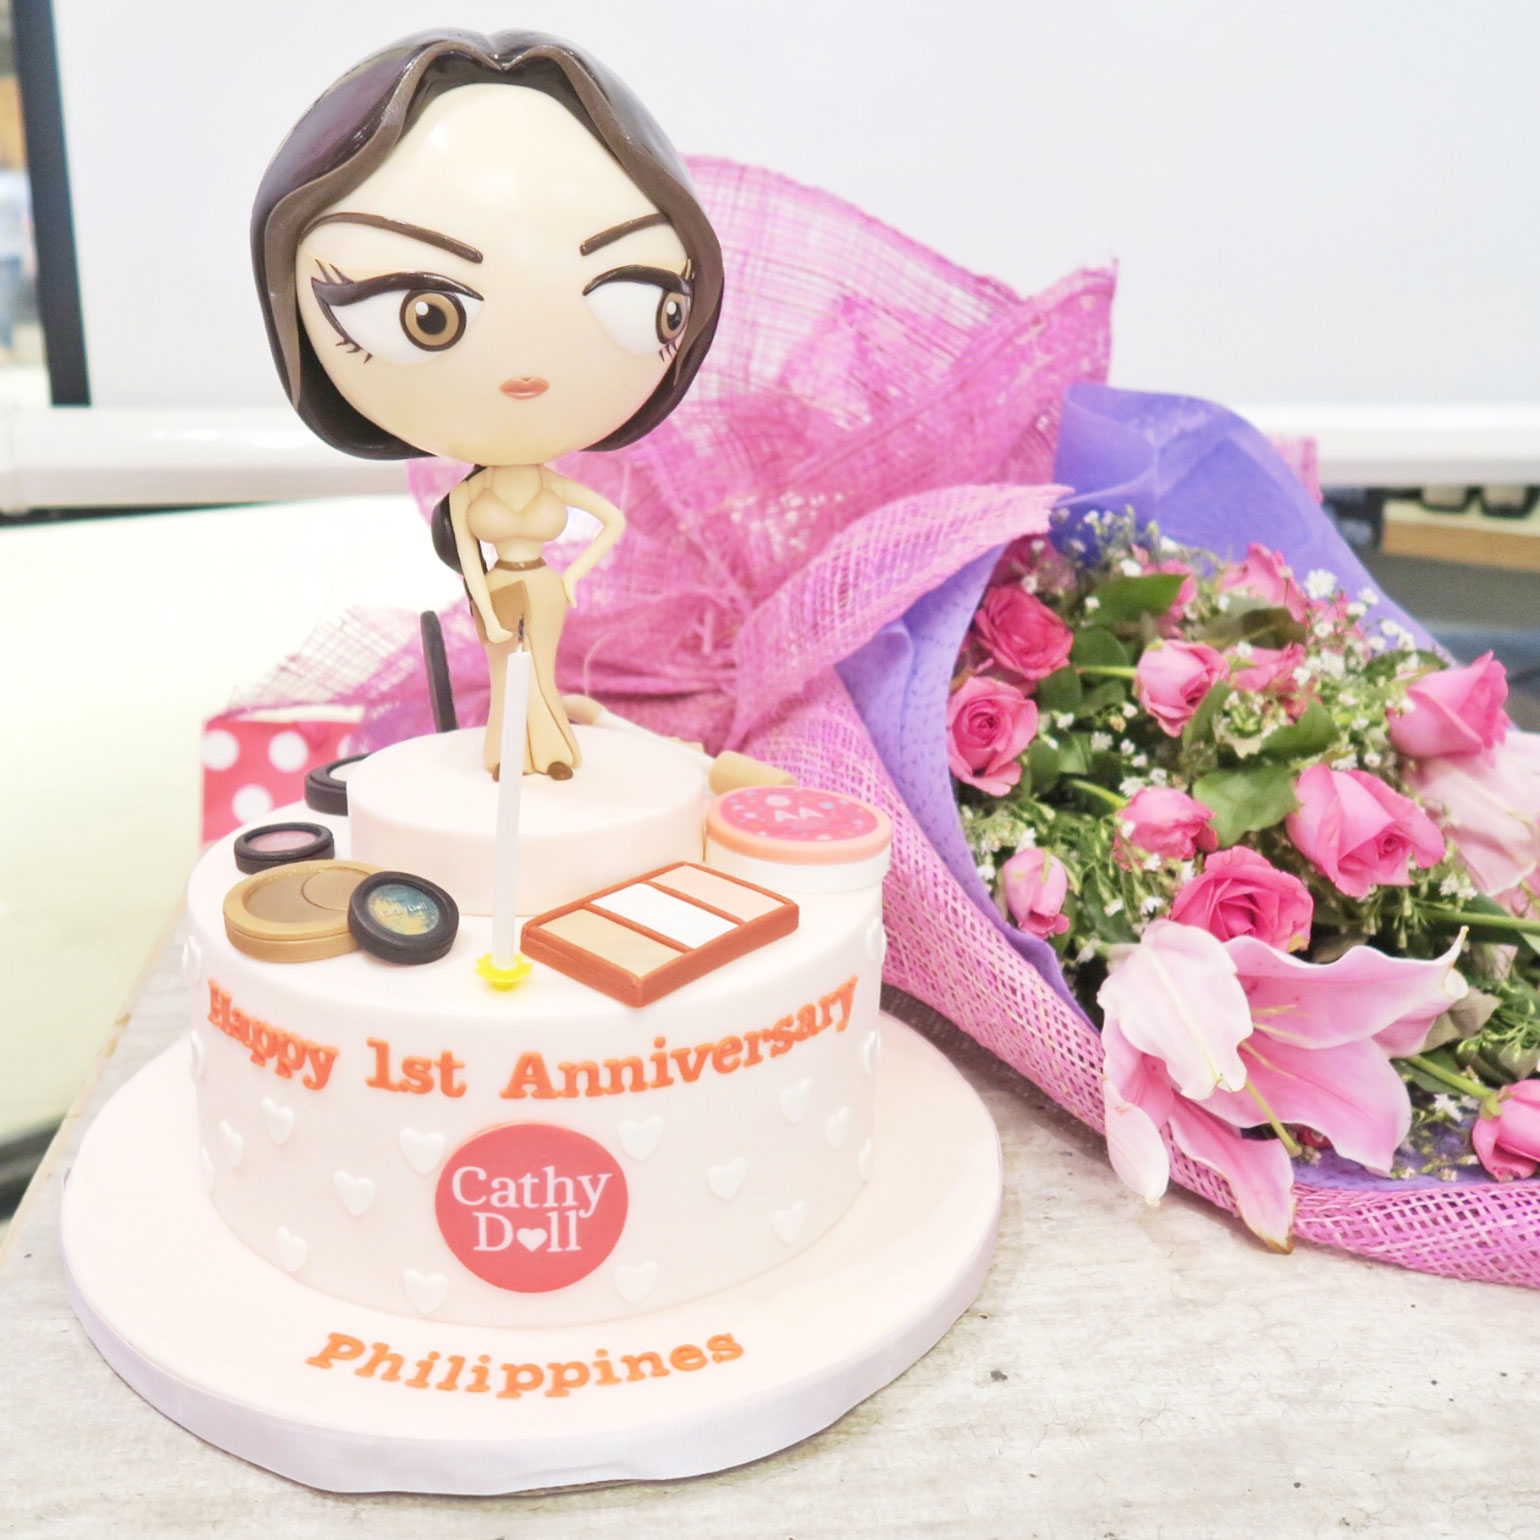 12 Cathy Doll Philippines New Products - Anniversary - She Sings Beauty by Gen-zel